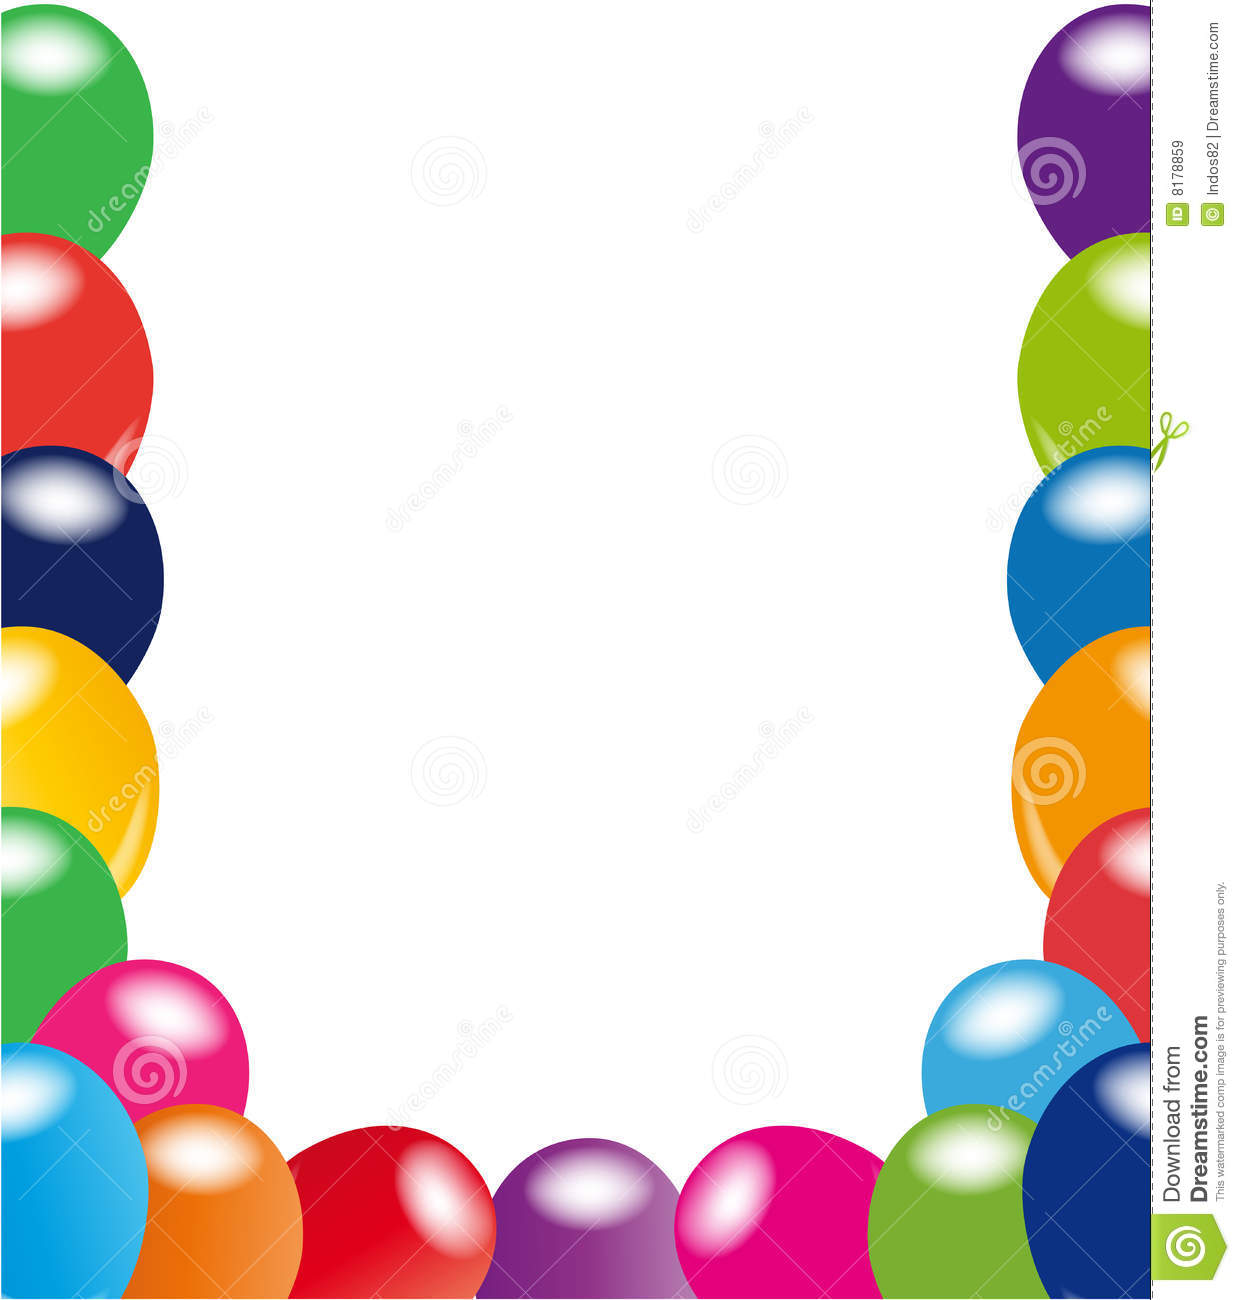 balloons frame royalty free stock images image 8178859